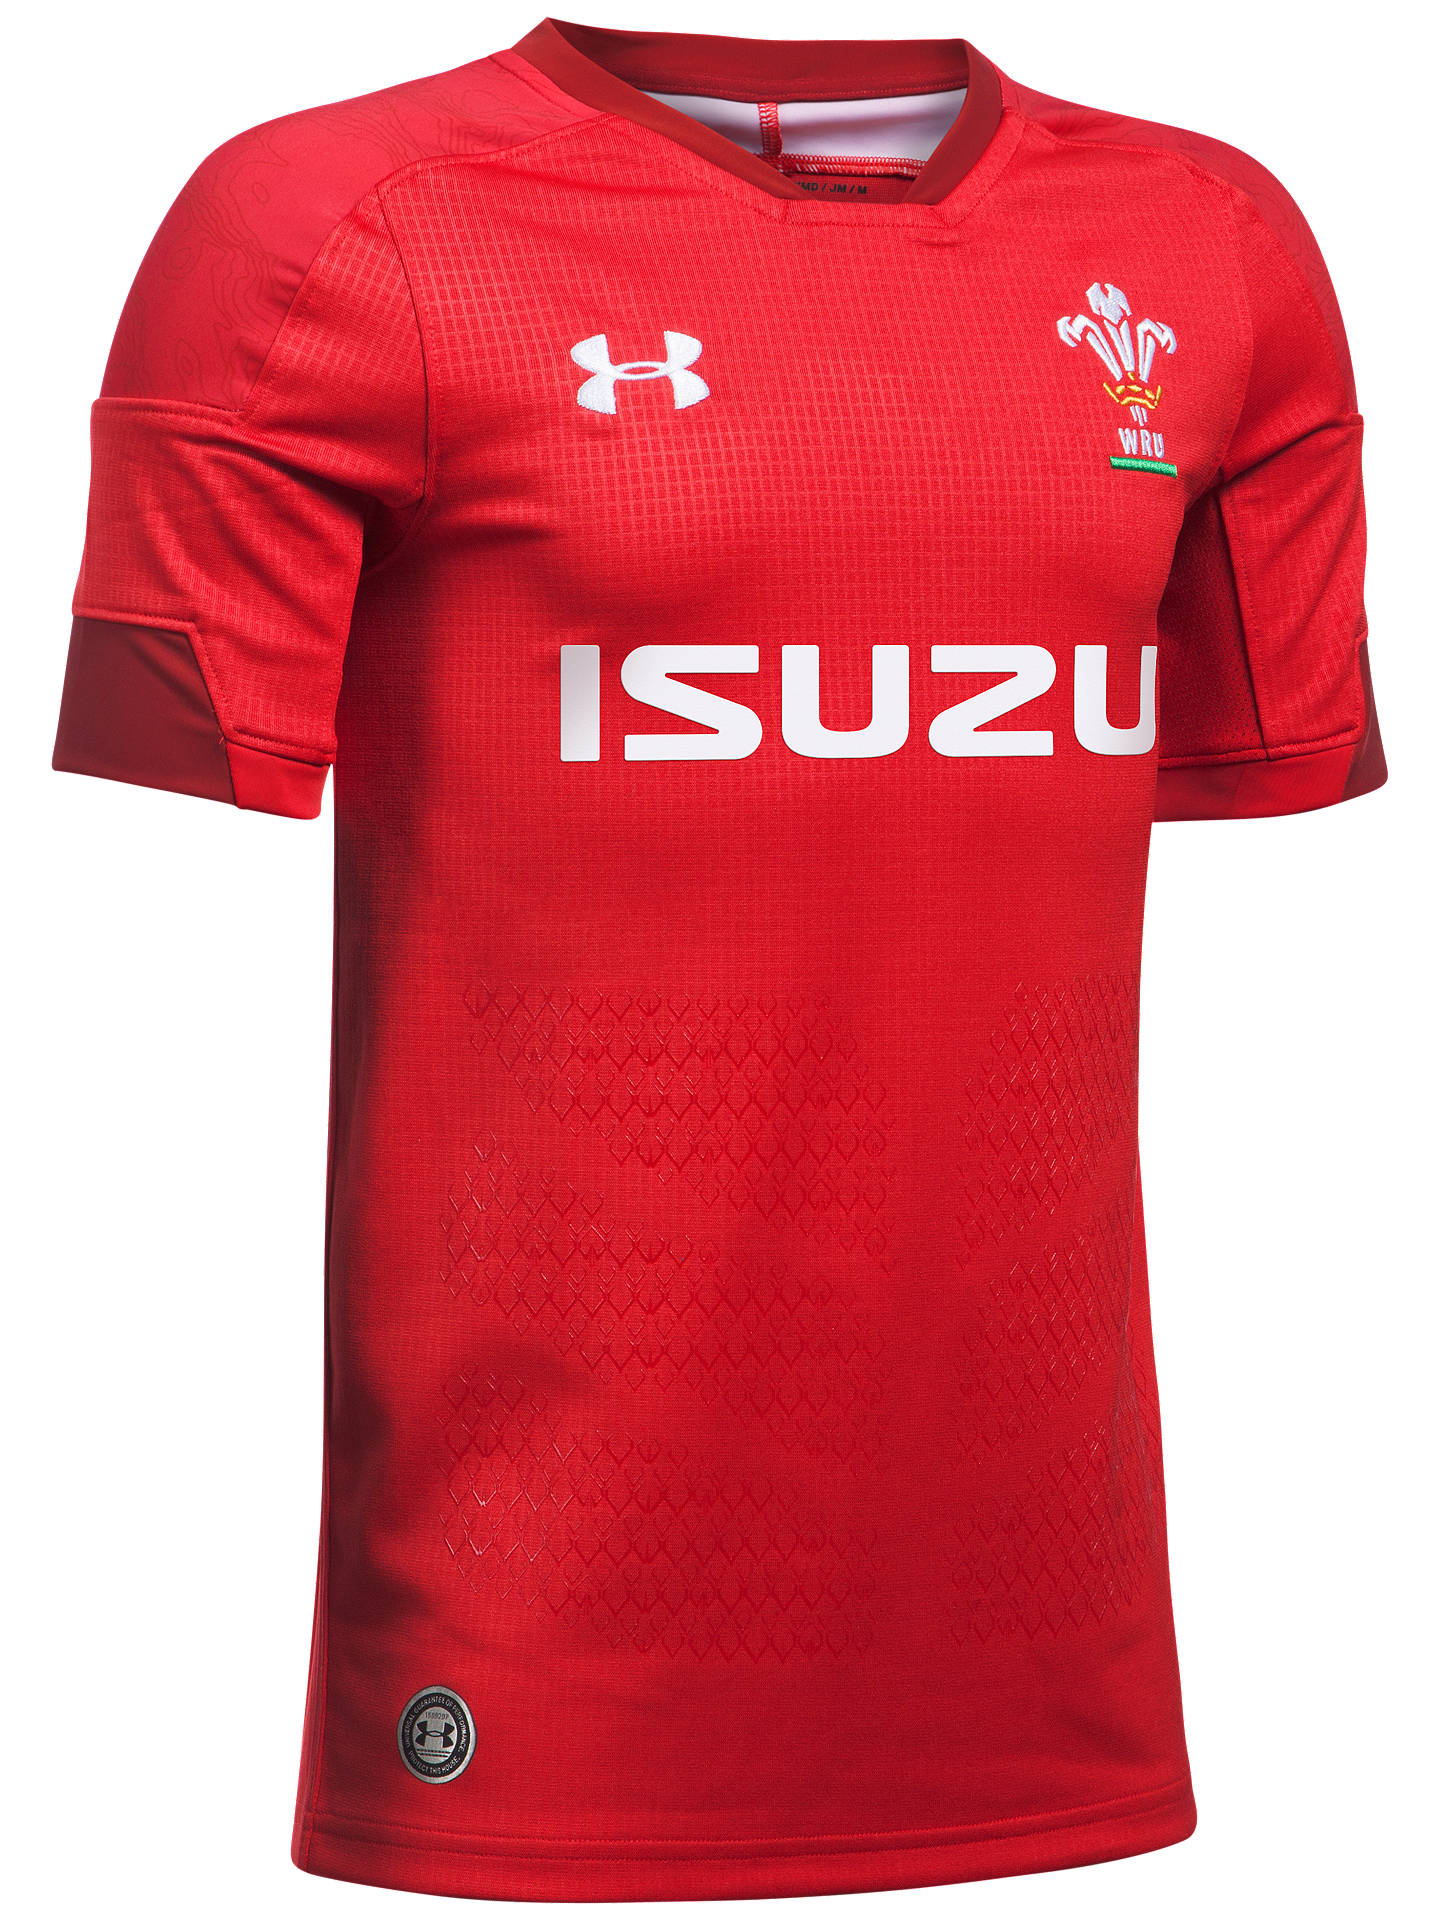 42b571b8b83 Buy Under Armour Official Welsh Rugby Union Supporters Shirt, Red, S Online  at johnlewis ...